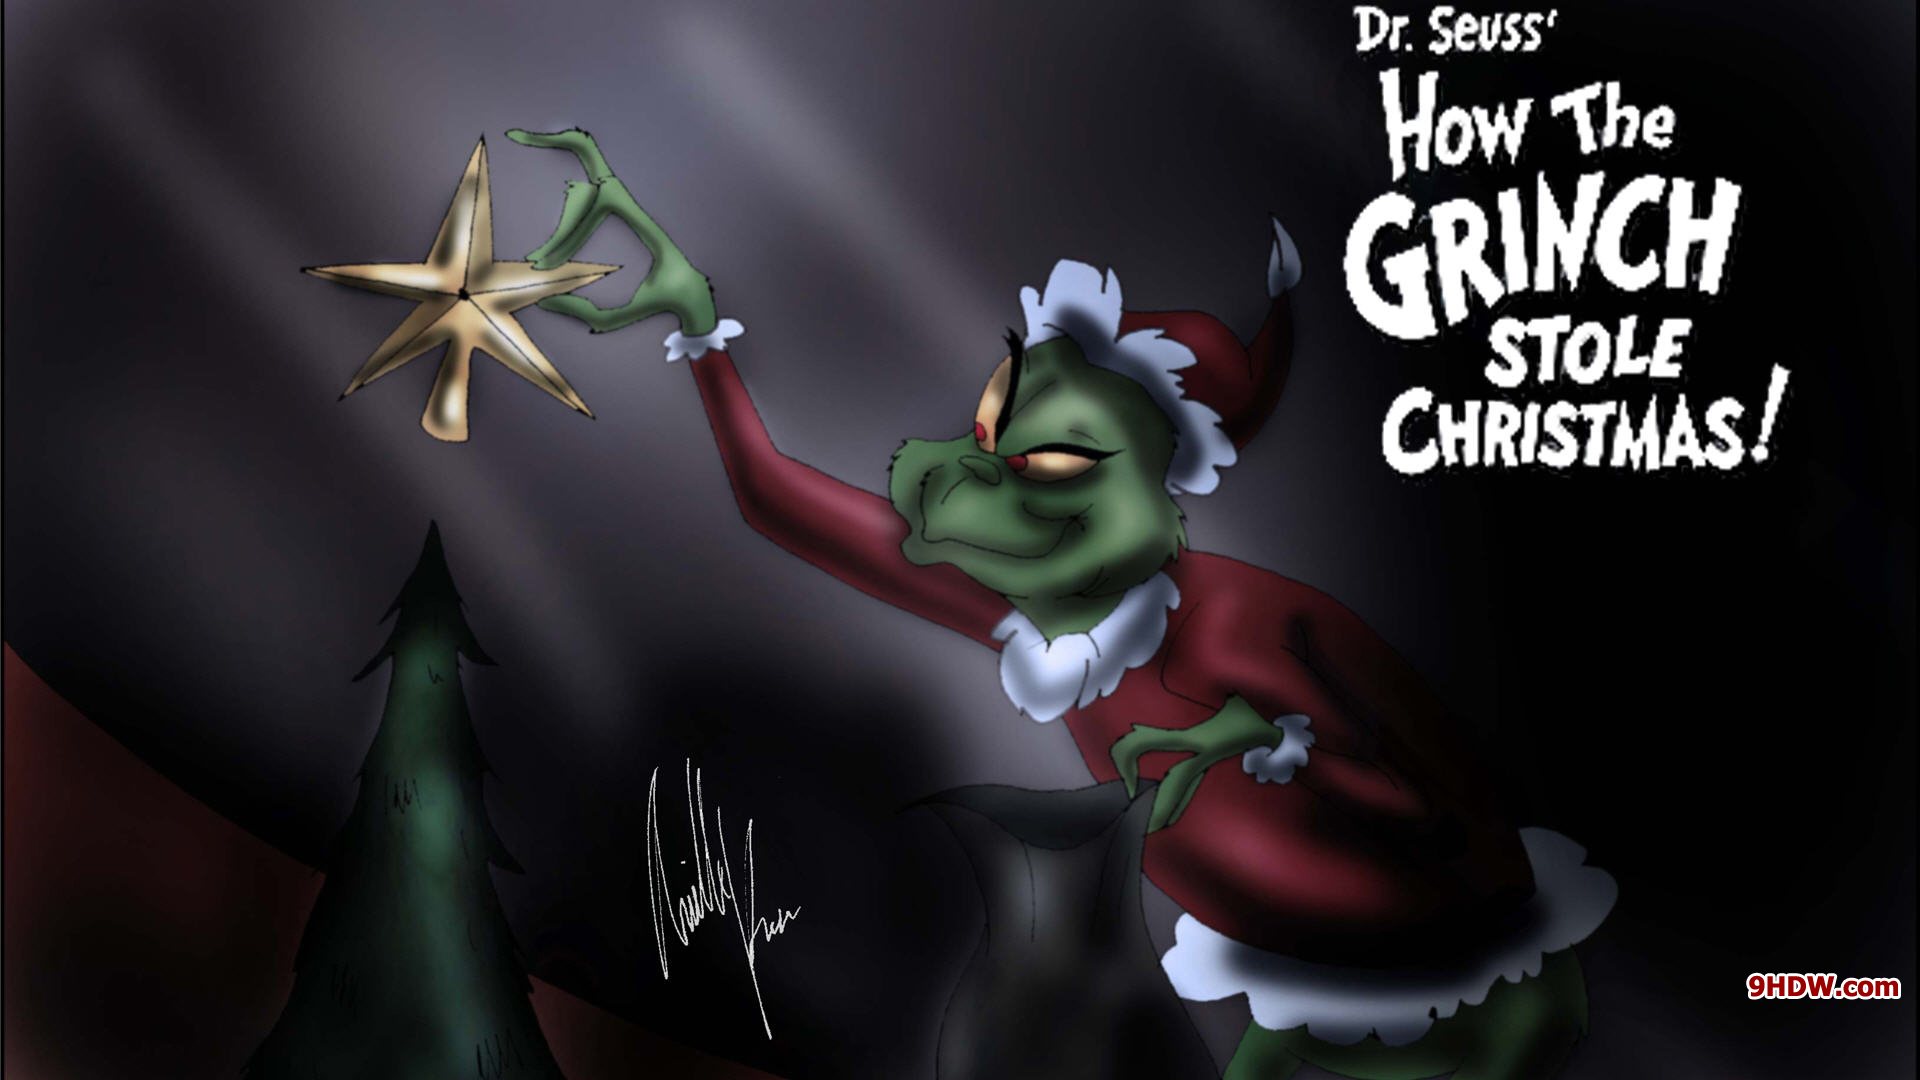 uss-How-The-Grinch-Stole-Christmas-Group-wallpaper-wp38011536